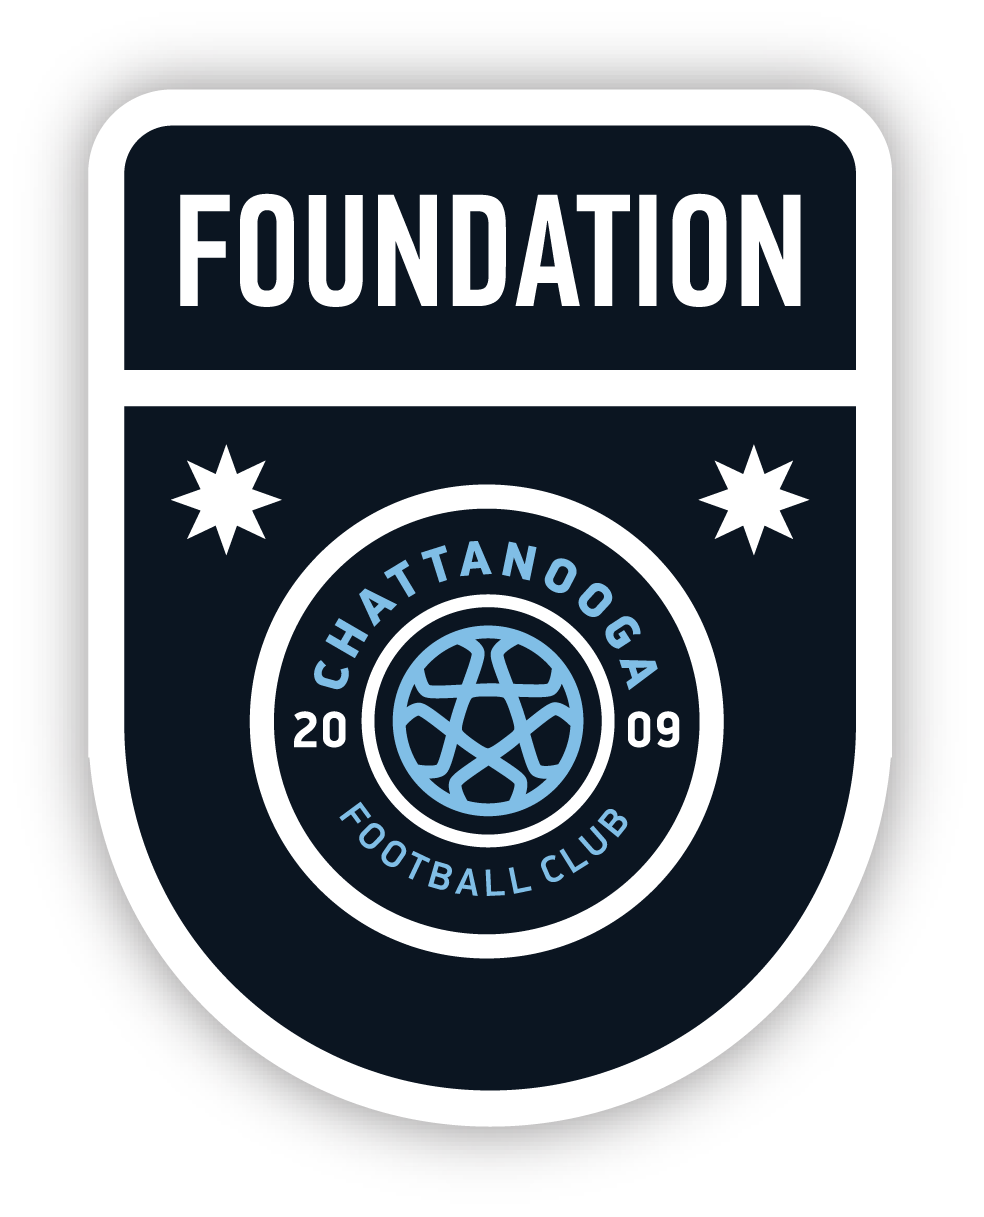 CFC Foundation